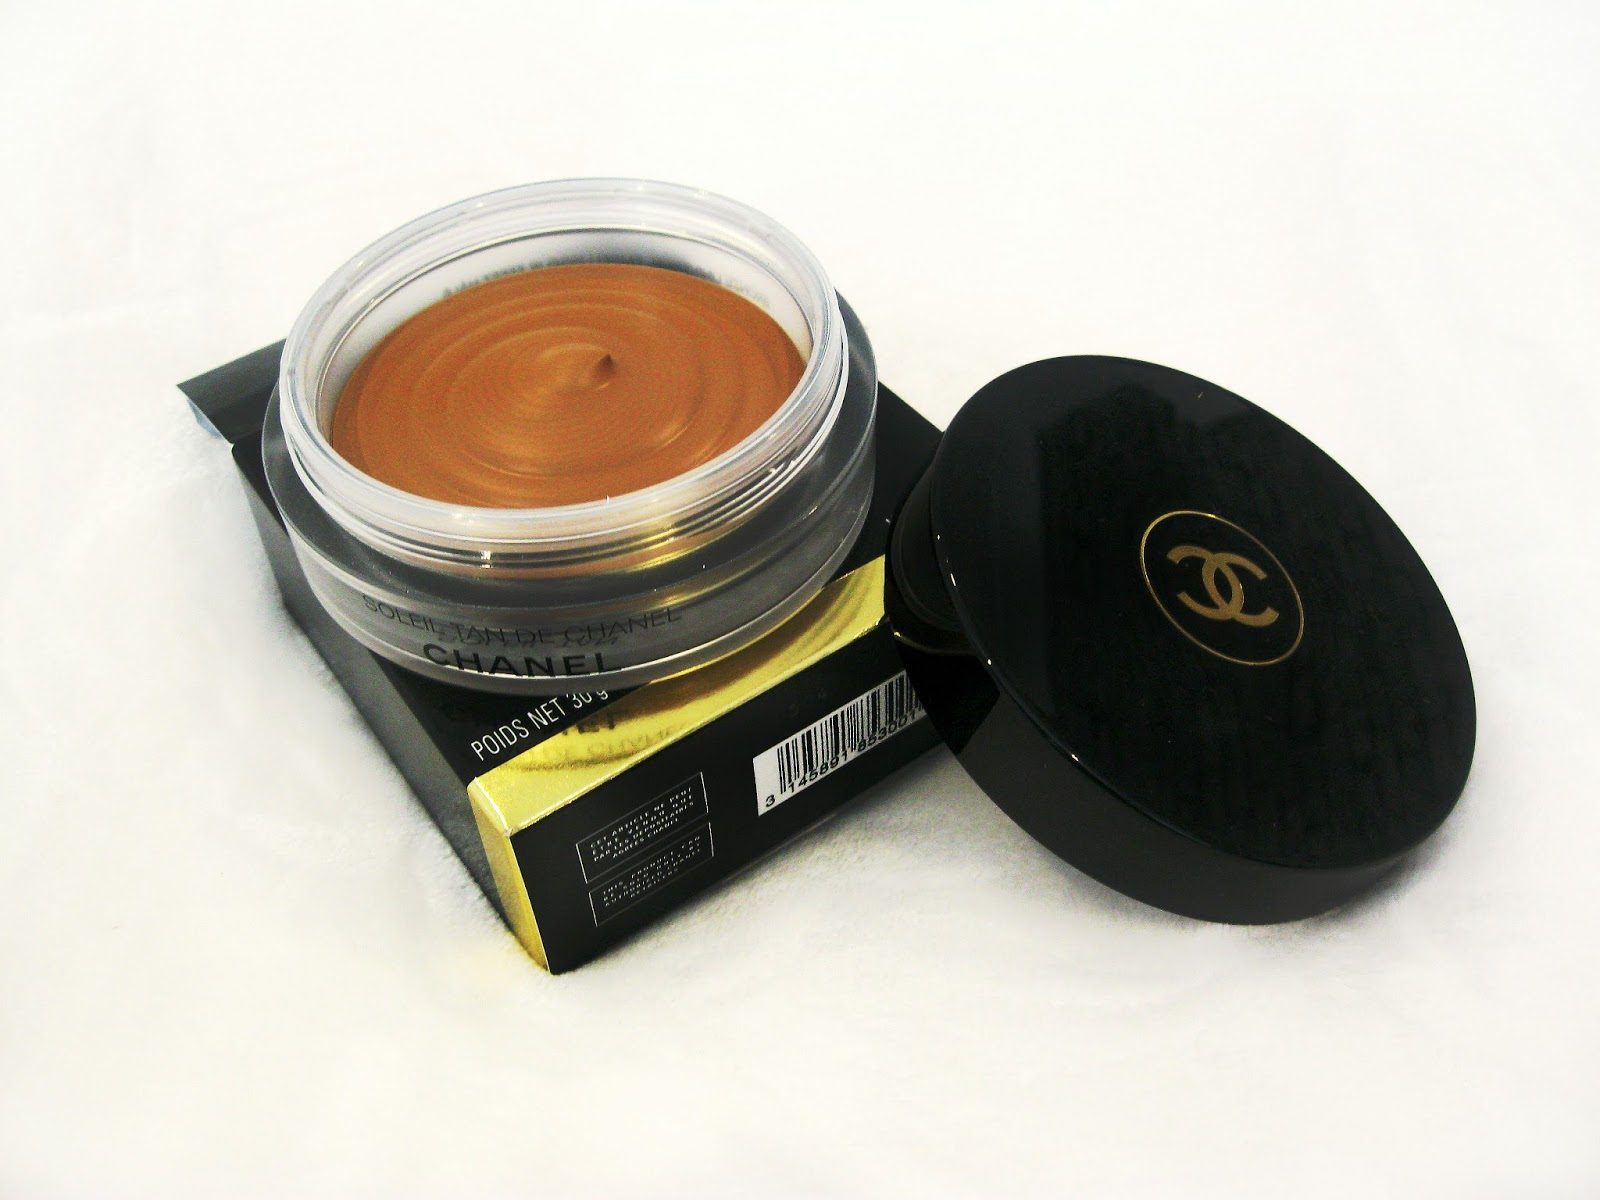 soliel tan de chanel, chanel bronze universal, chanel bronzer, chanel liquid bronzer, chanel cream bronzer, chanel bronzer pale skin, bronze universal pale skin, soleil tan de chanel on pale skin, best cream bronzer for light skin